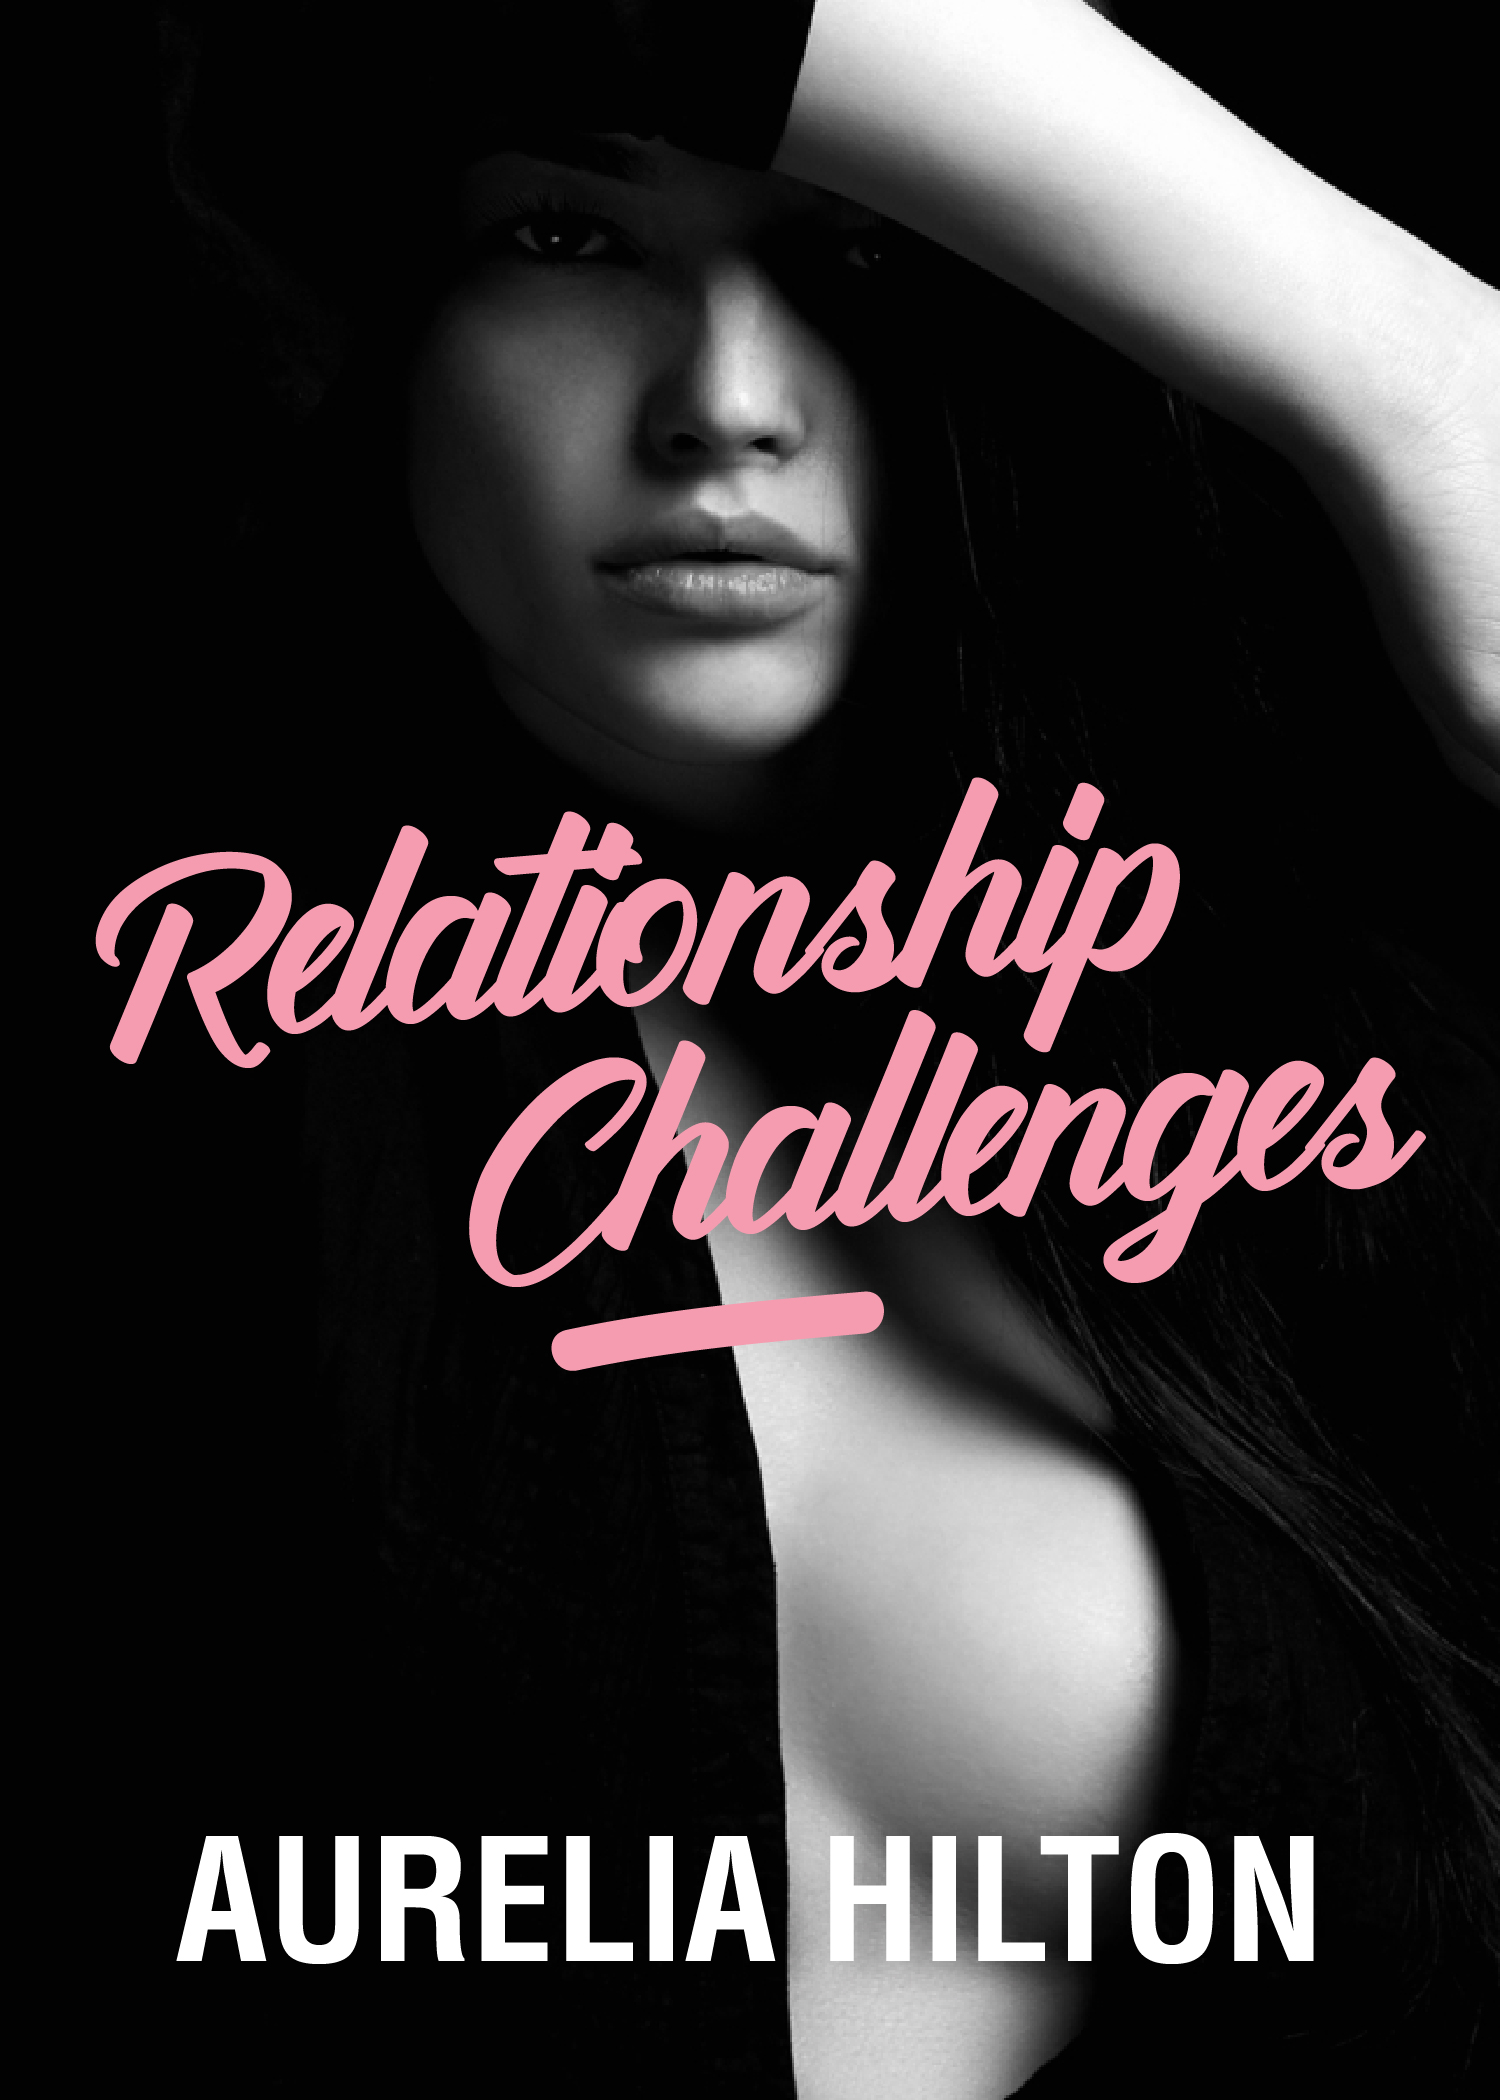 Relationships challenges